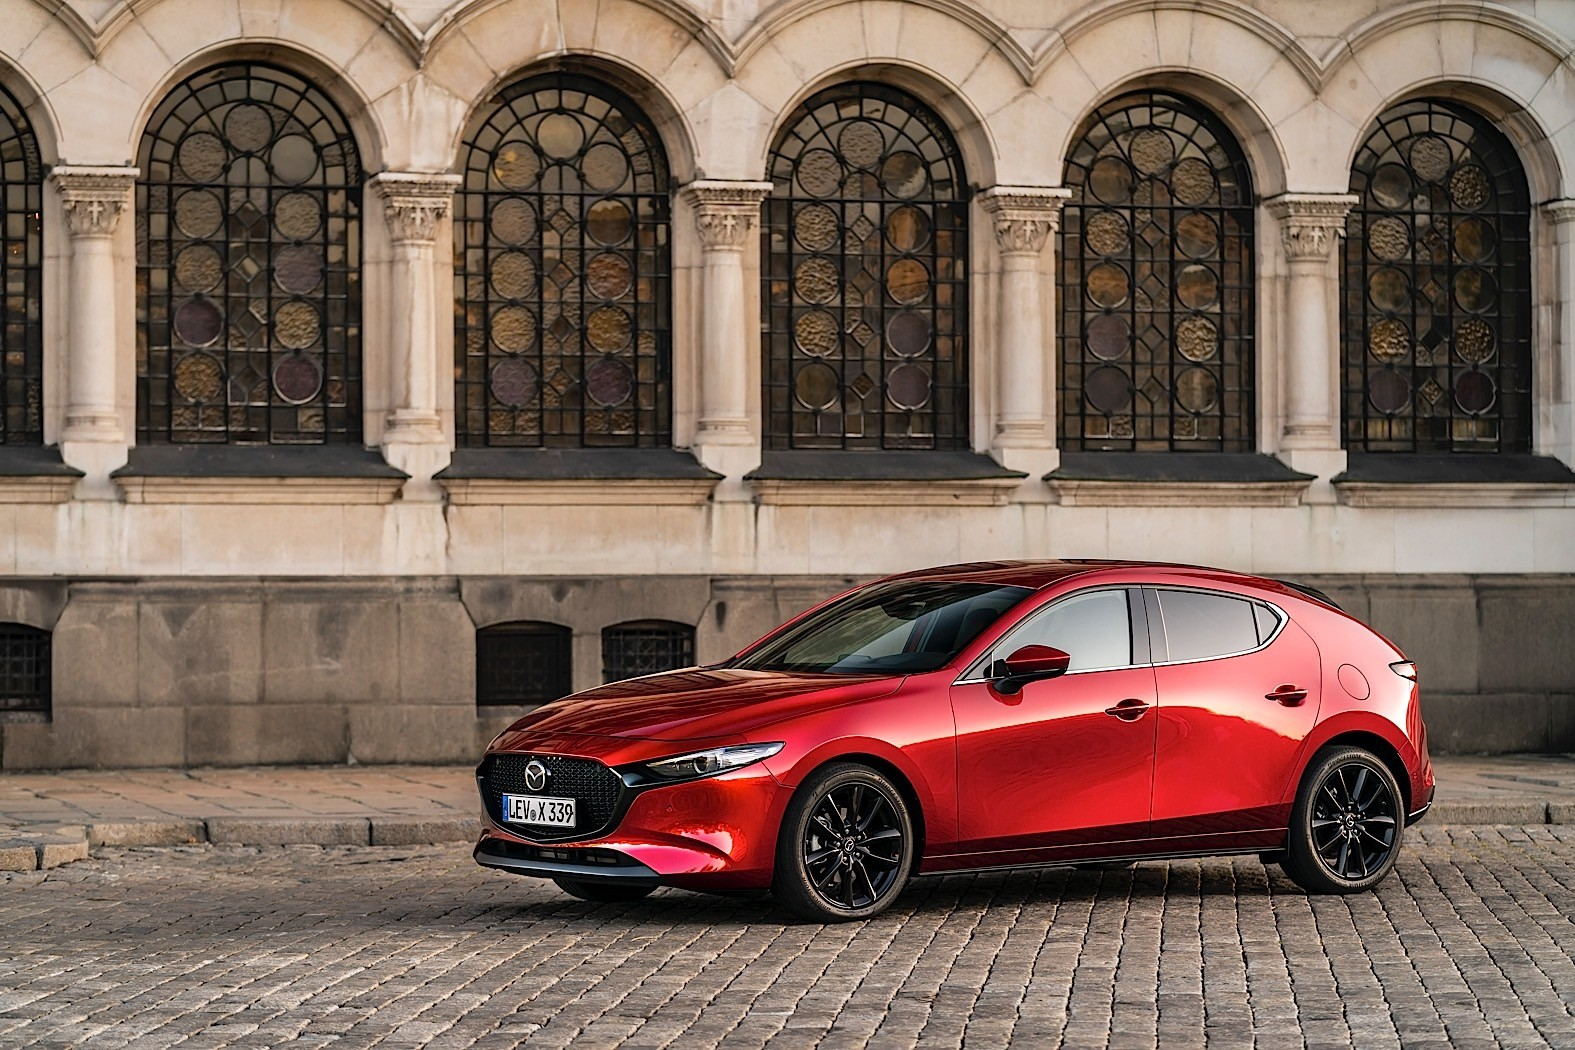 2021 mazda3 turbo revealed with skyactivg 25t engine